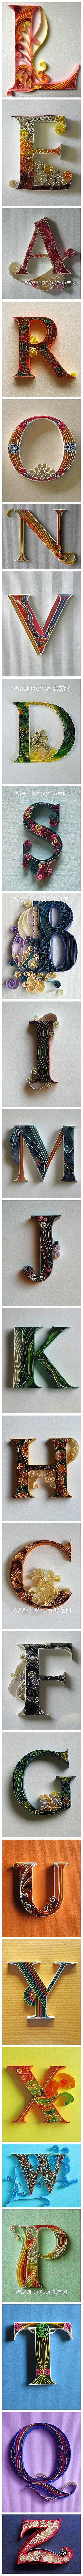 Quilling Extraordinaire! Beautifully ornate quilled letters by Sabeena Karnik ~ source link @ : http://ego-alterego.com/2012/02/beautifully-ornate-quilled-letters-by-sabeena-karnik/